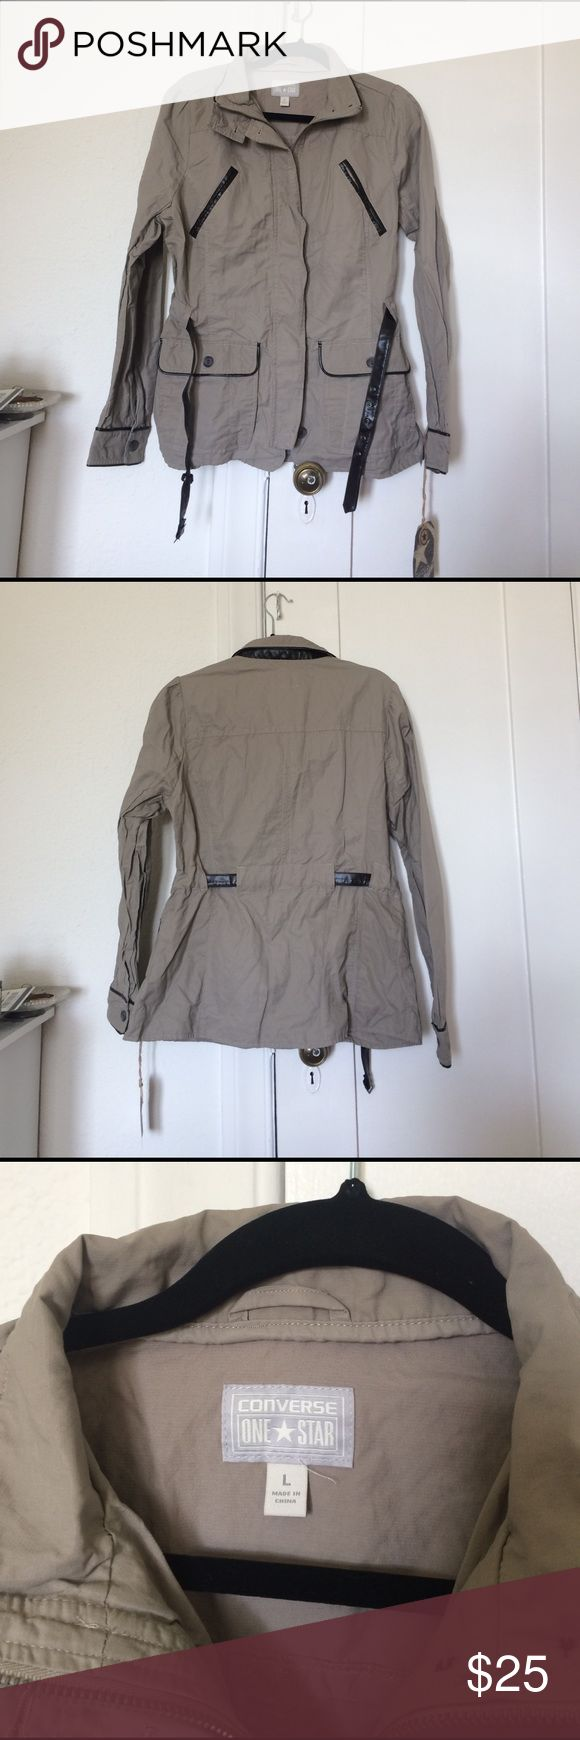 Converse Safari Chic Jacket w/ Faux Leather Trim New with tags, never worn Converse Jackets & Coats Utility Jackets